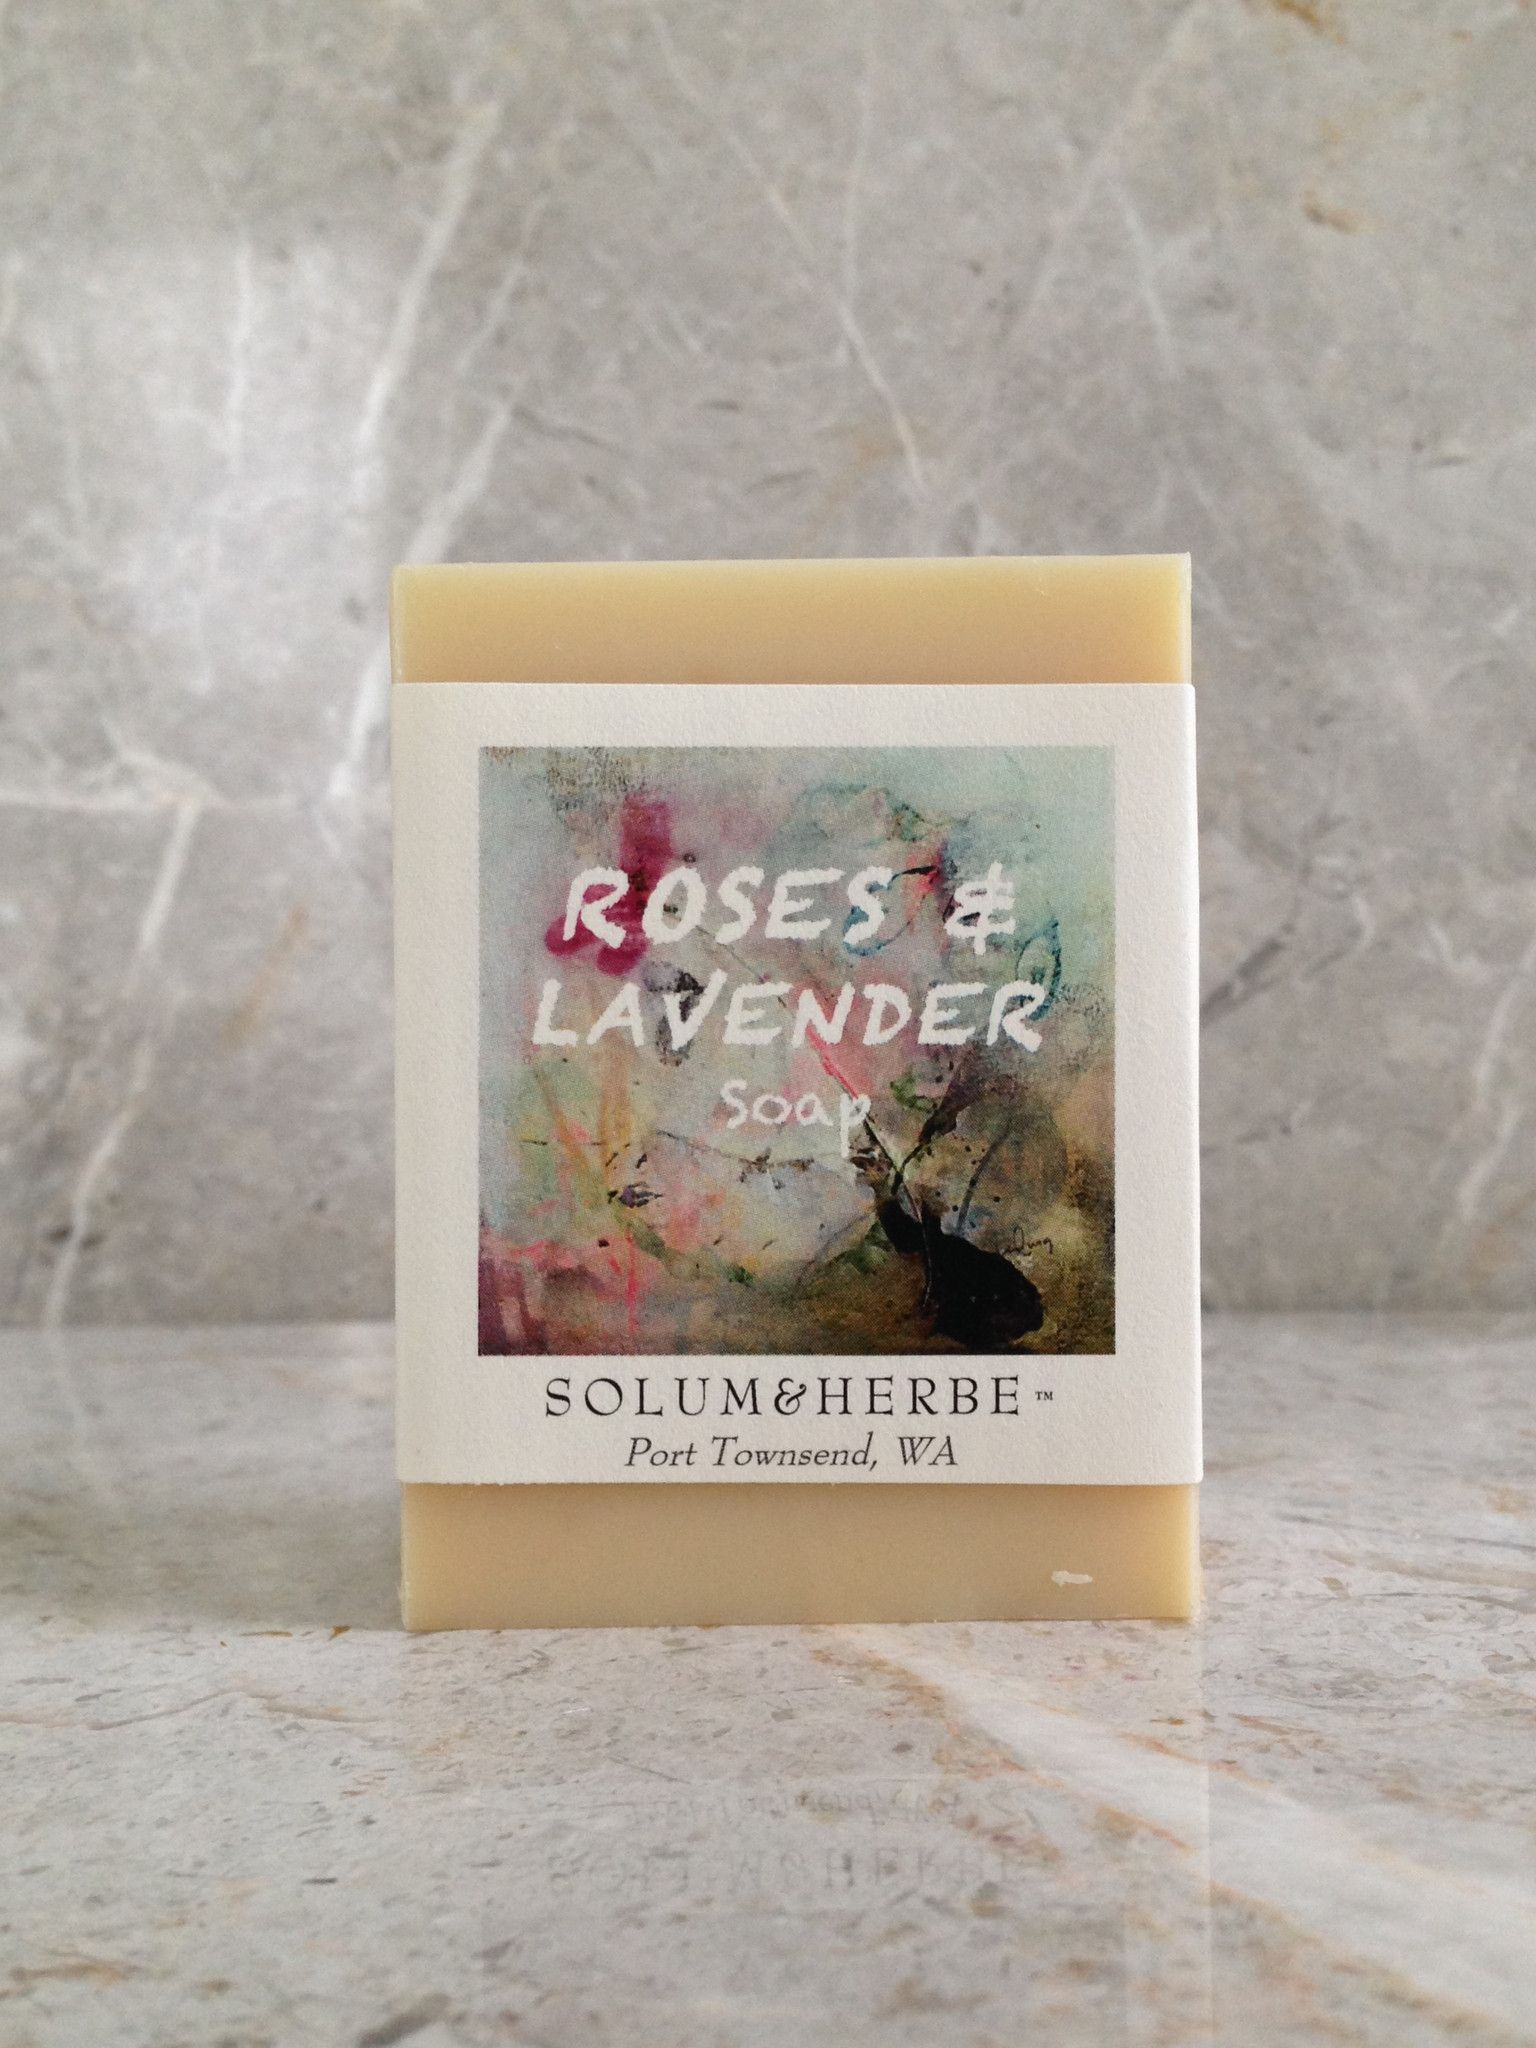 Rose and lavender handmade soap